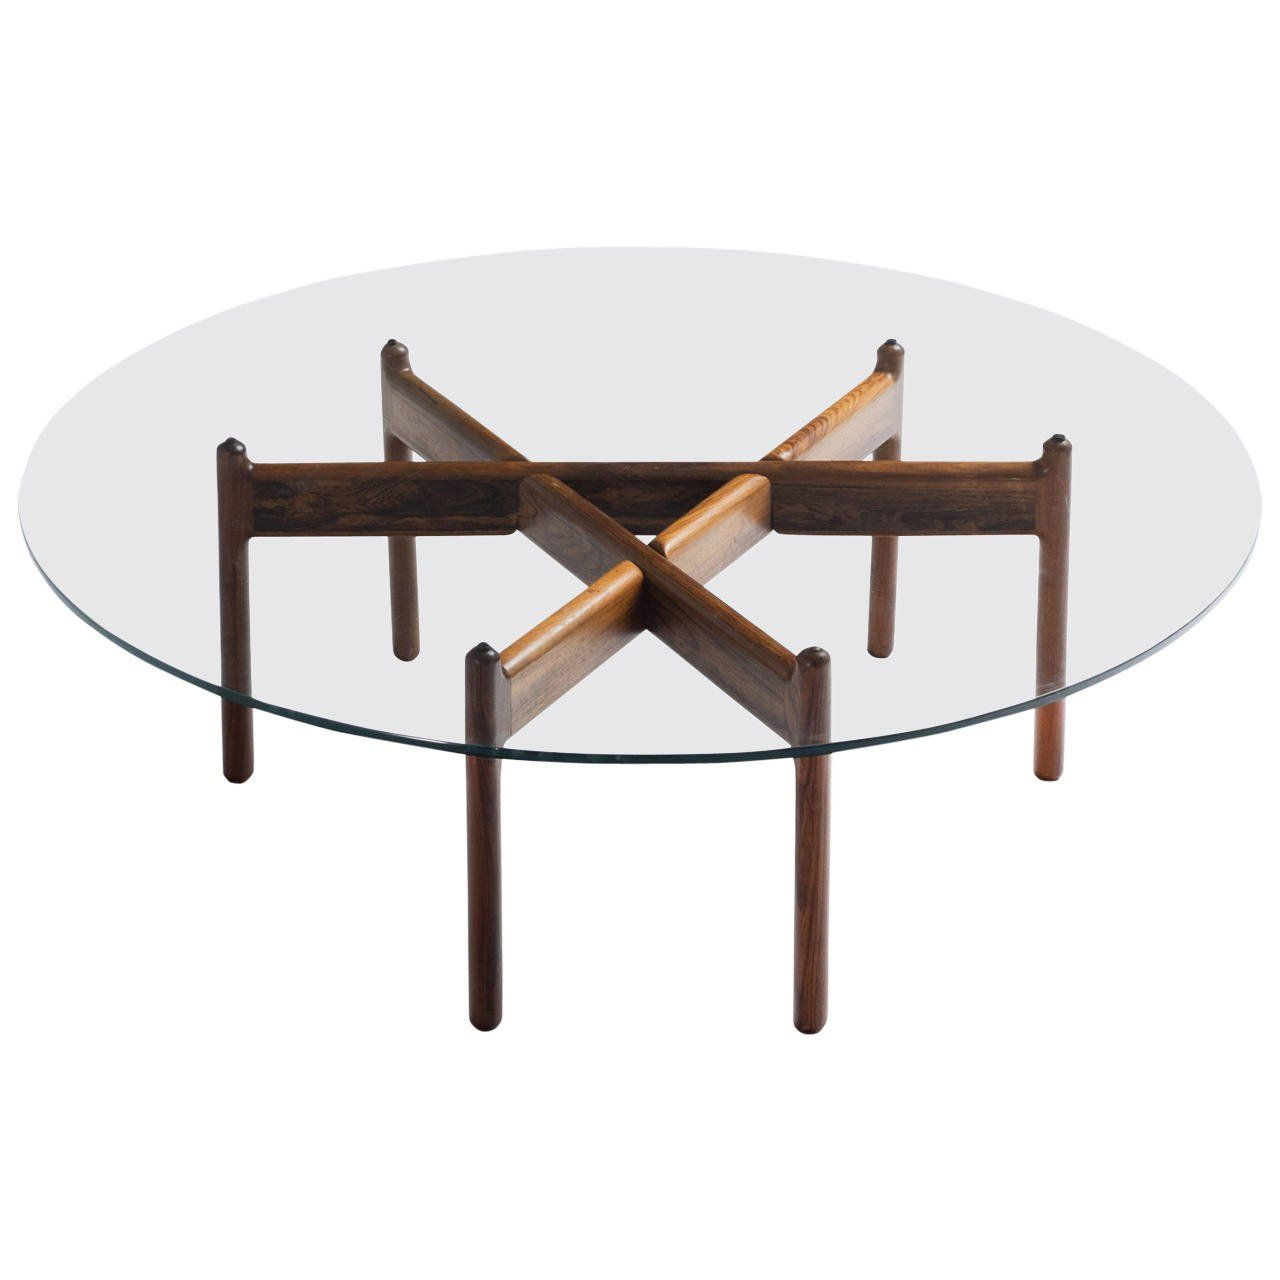 Niels Bach Rosewood Coffee Table Coffee Table Table Home Decor [ 1280 x 1280 Pixel ]